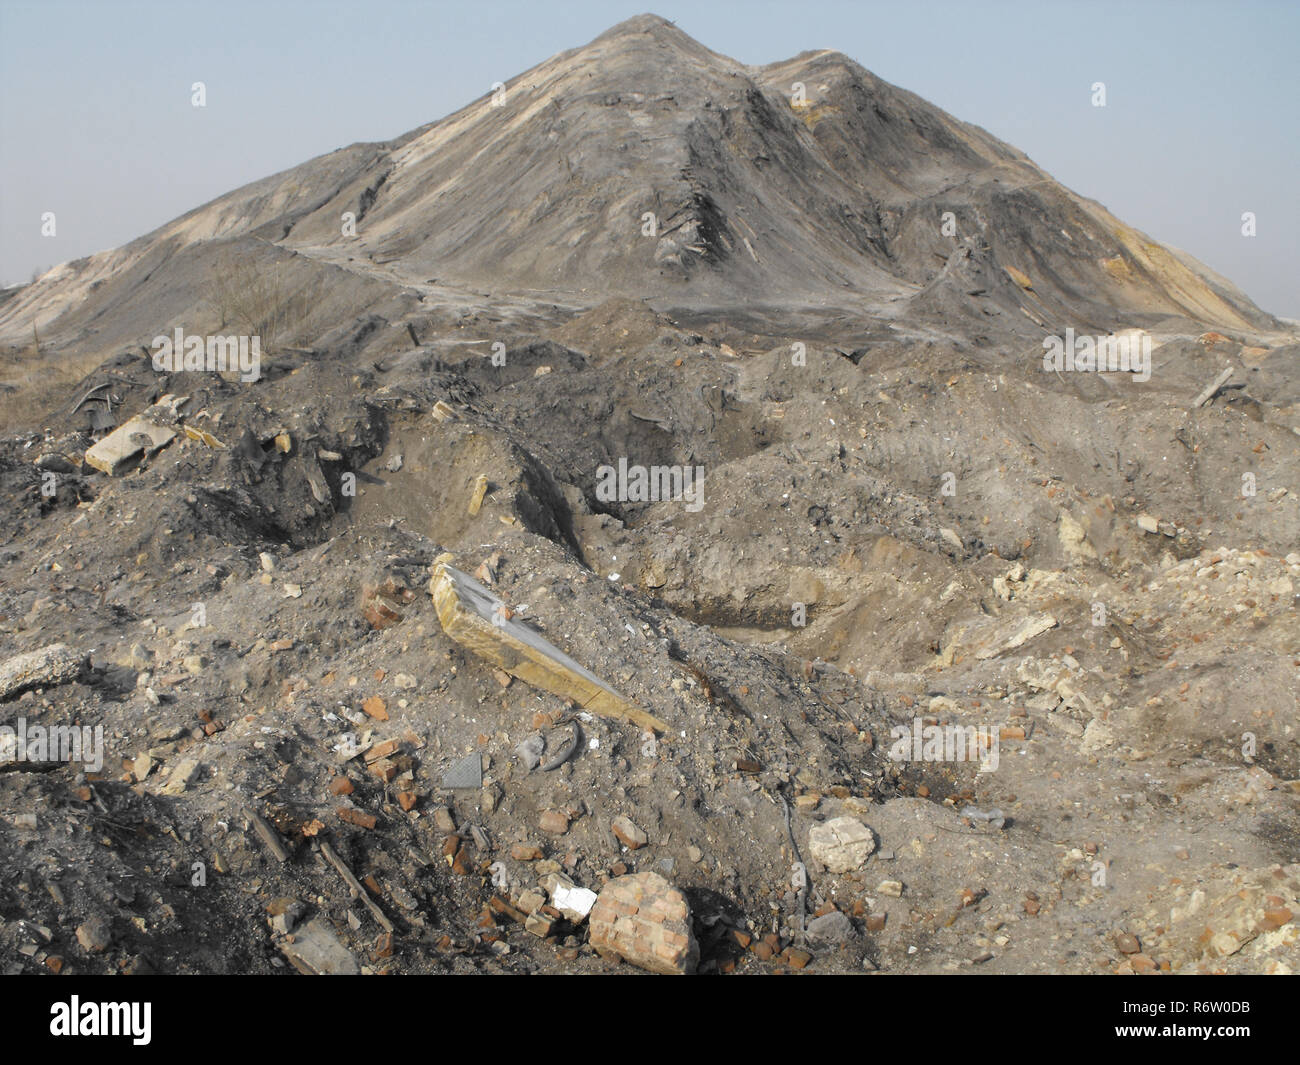 Ecological disaster, mountains of debris. - Stock Image